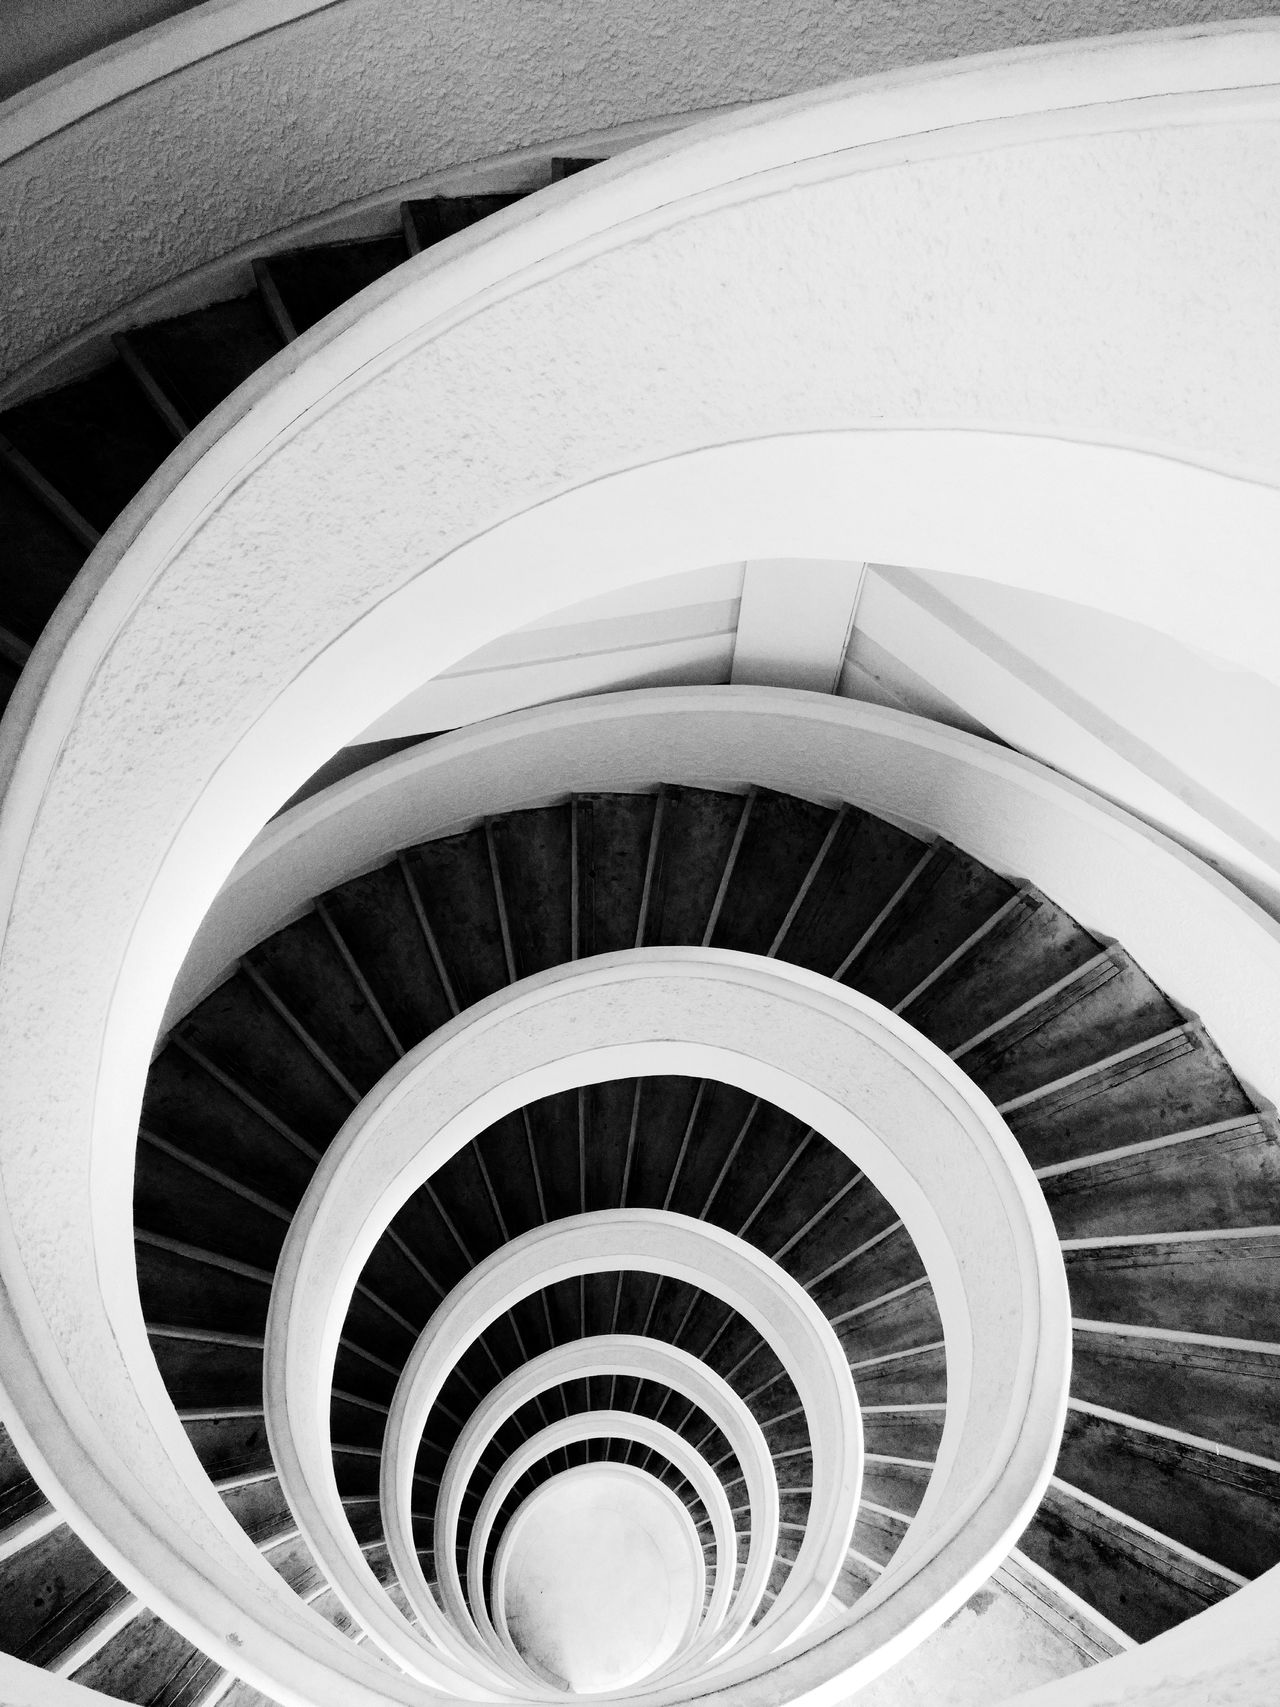 Loop Spiral Steps And Staircases Staircase Steps High Angle View Railing Architecture Spiral Stairs Spiral Staircase Built Structure Stairs No People Day Blackandwhite Shotononeplus Onepluslife Bw Loop